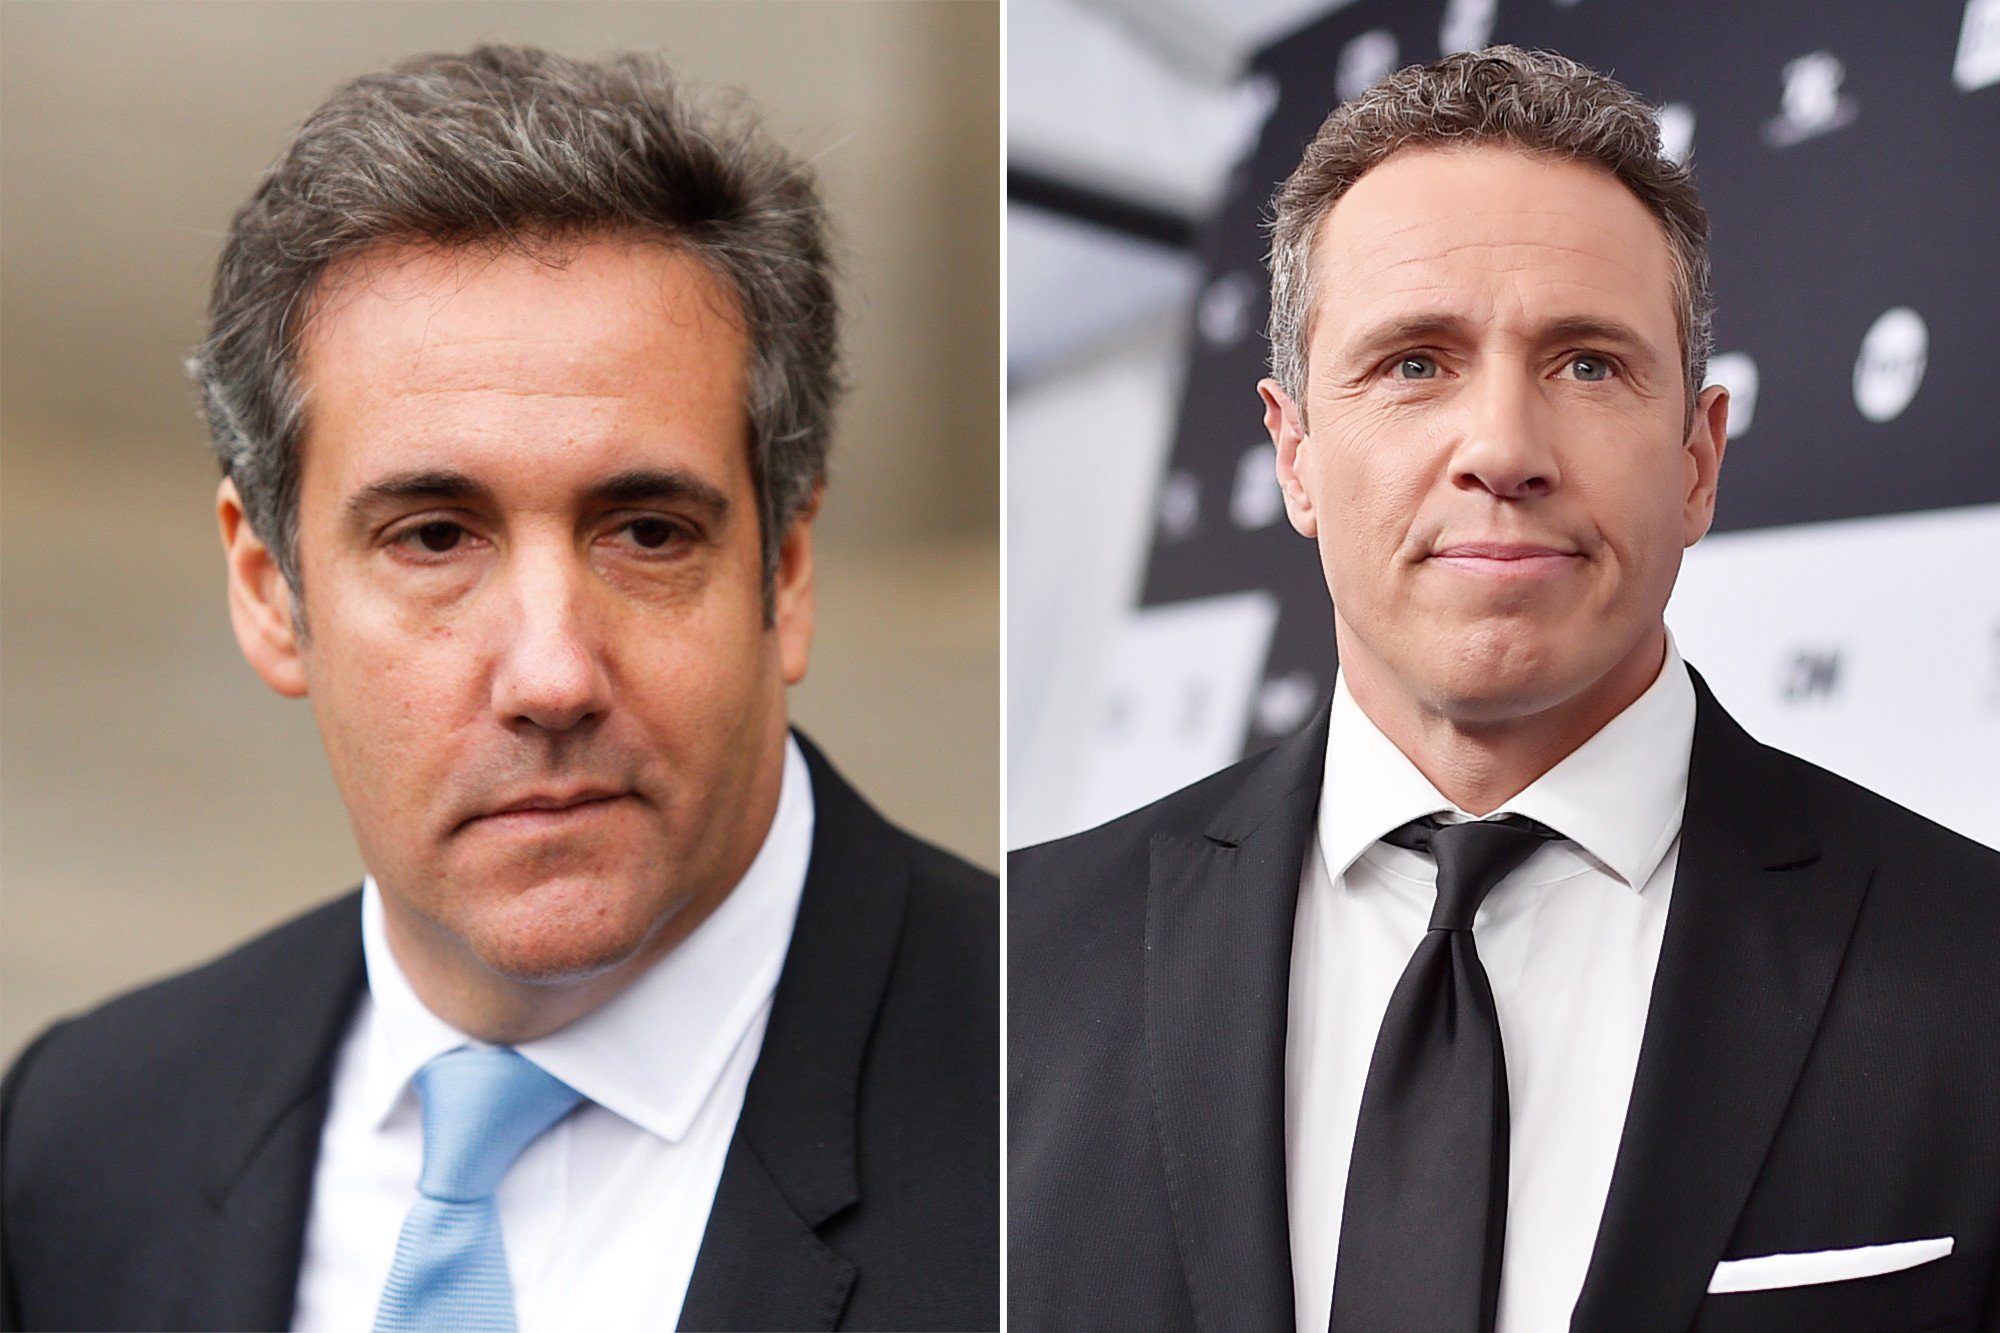 Cohen secretly recorded conversation with CNN anchor